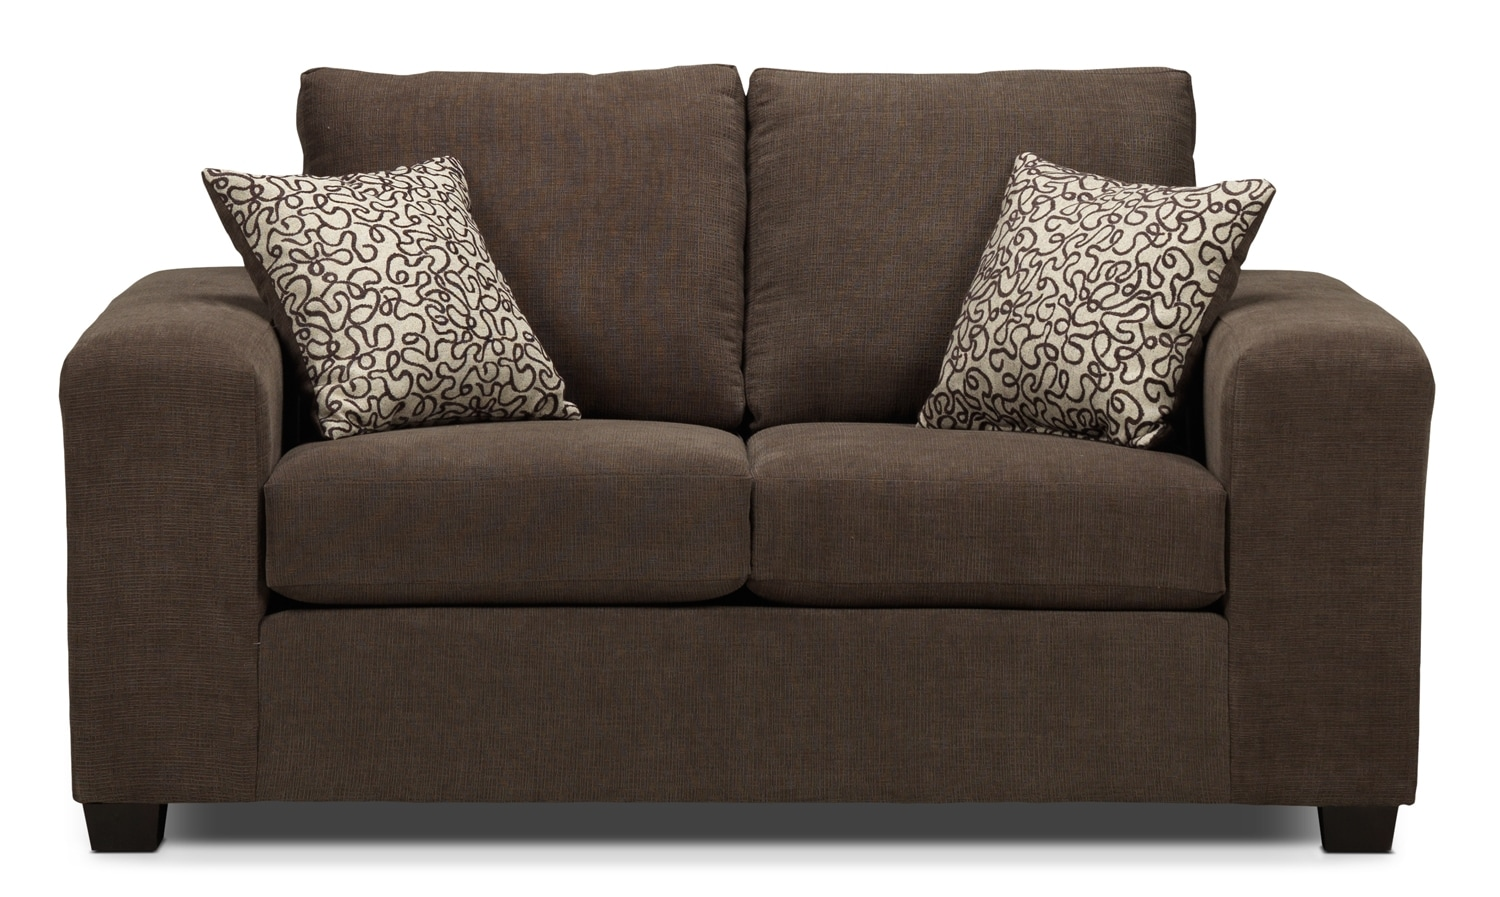 Living Room Furniture - Fava Loveseat - Light Brown